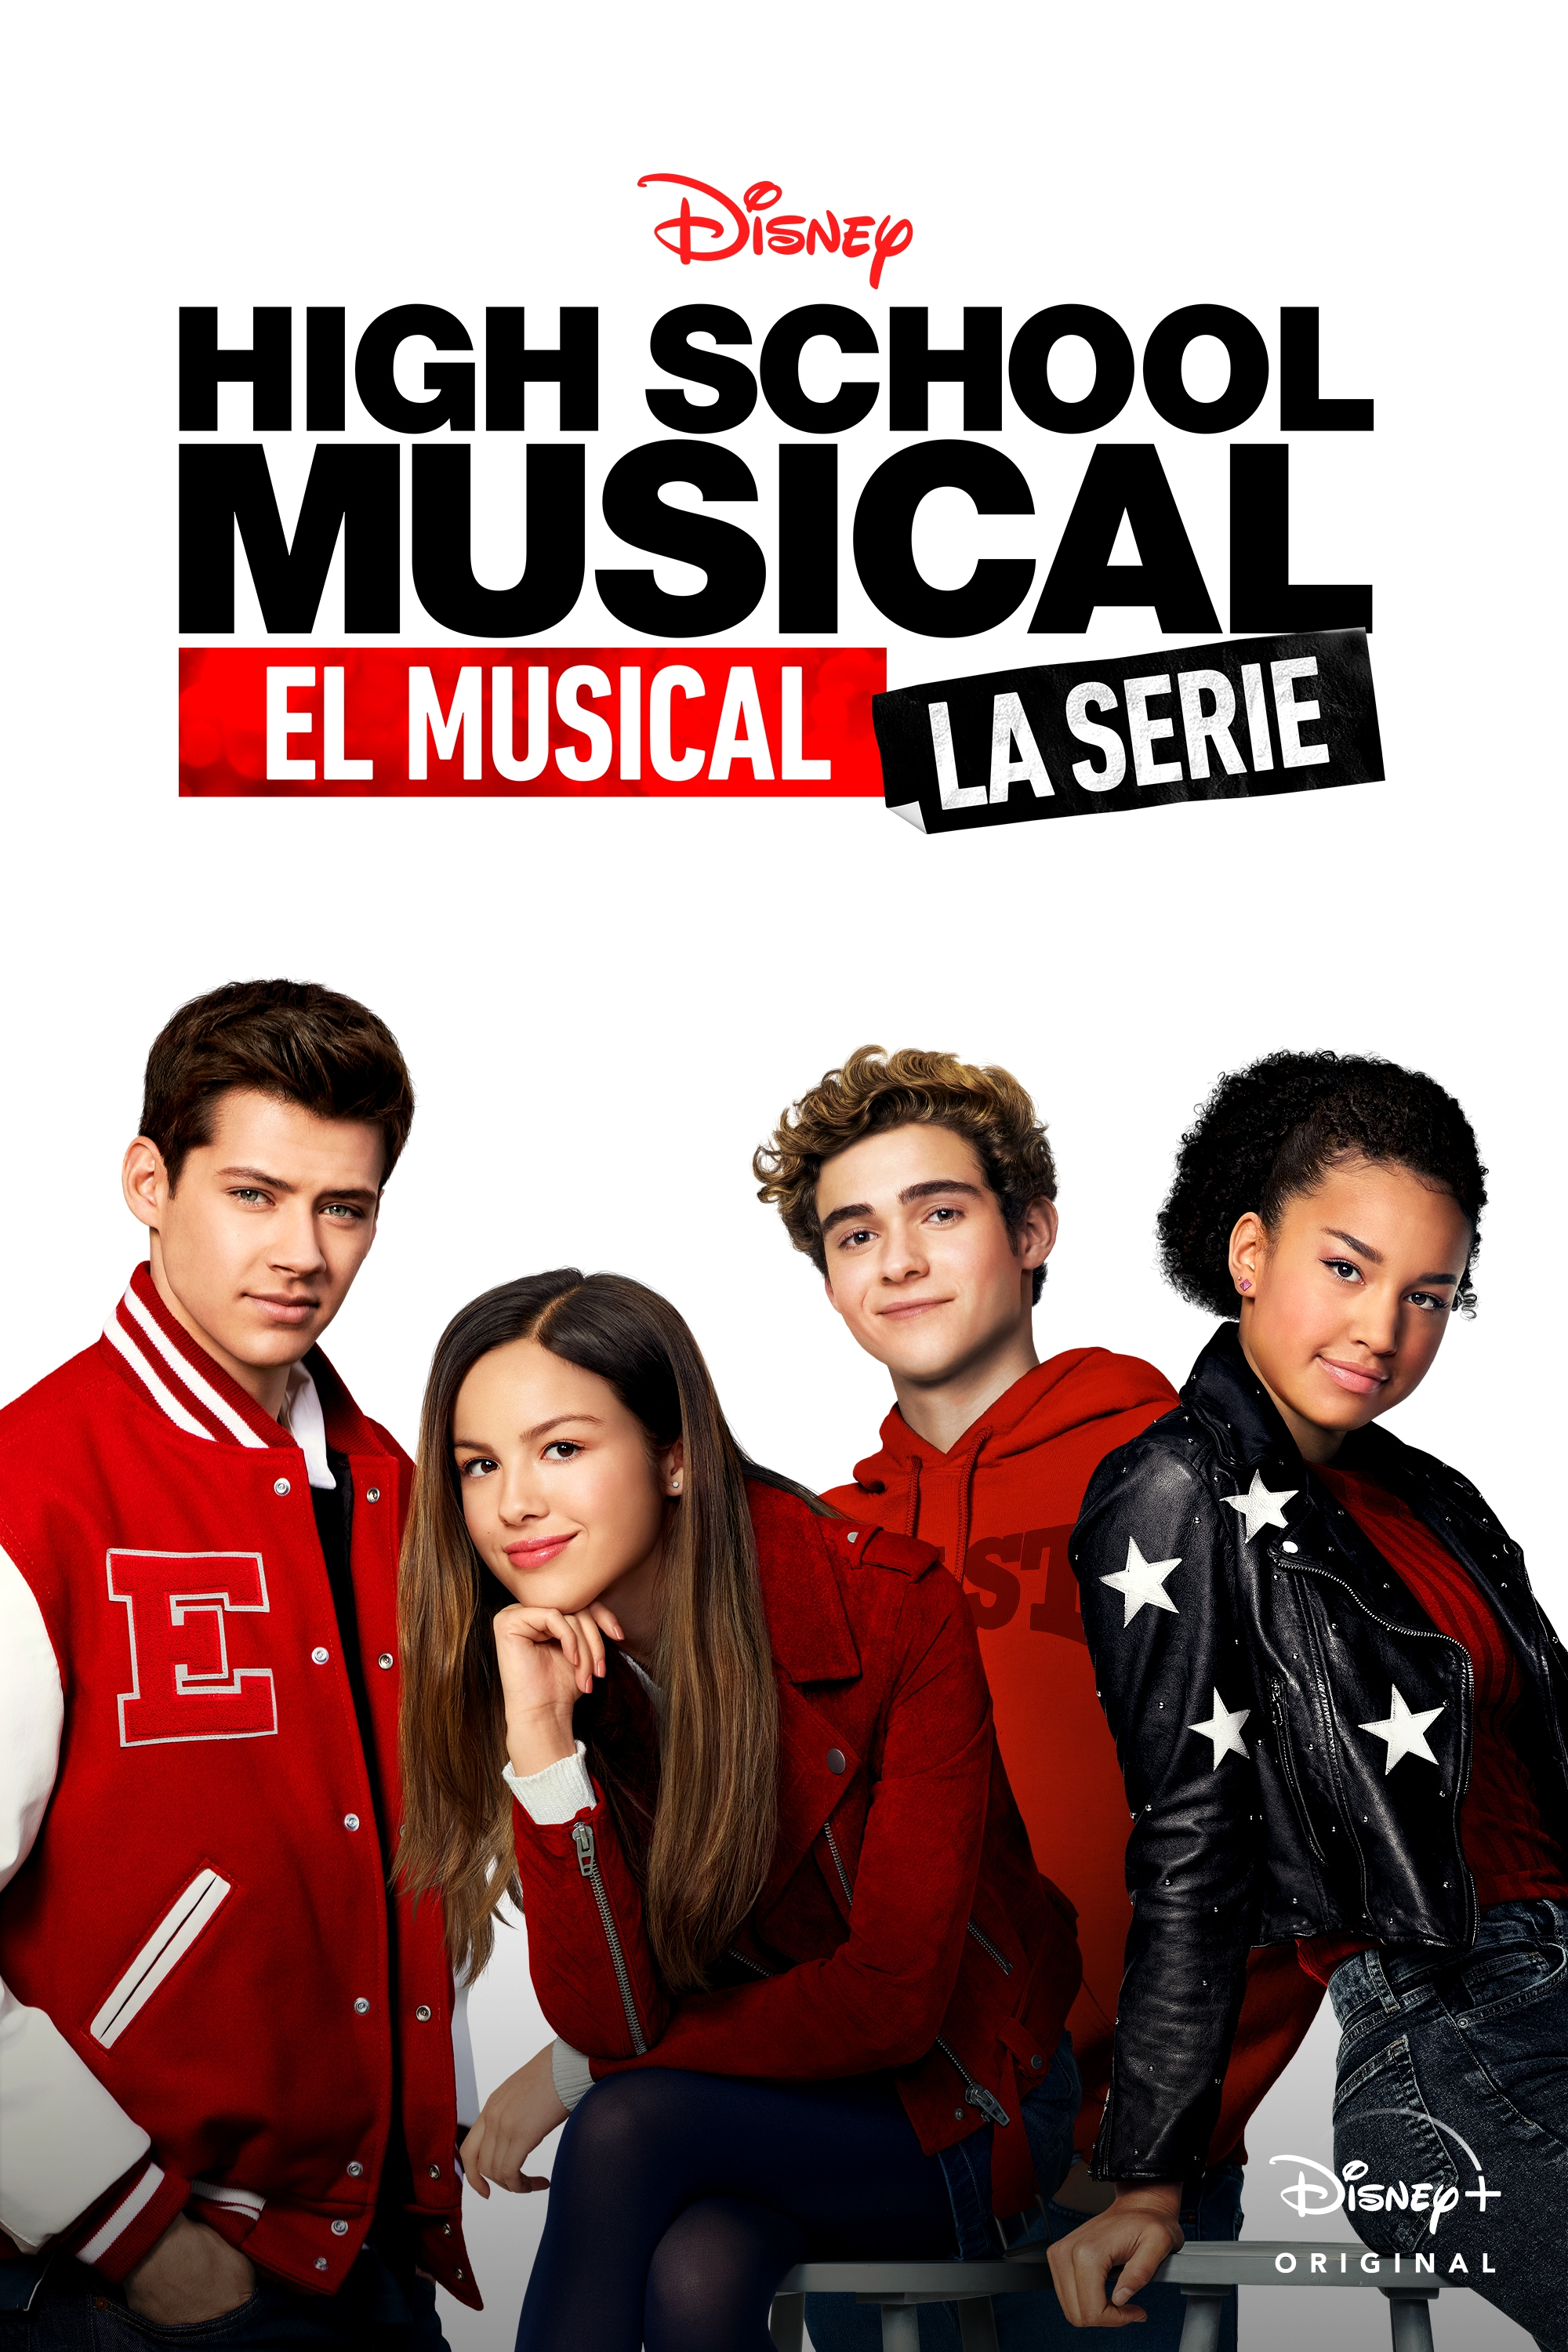 High School Musical: The Musical: The Series | Disponible en Disney+